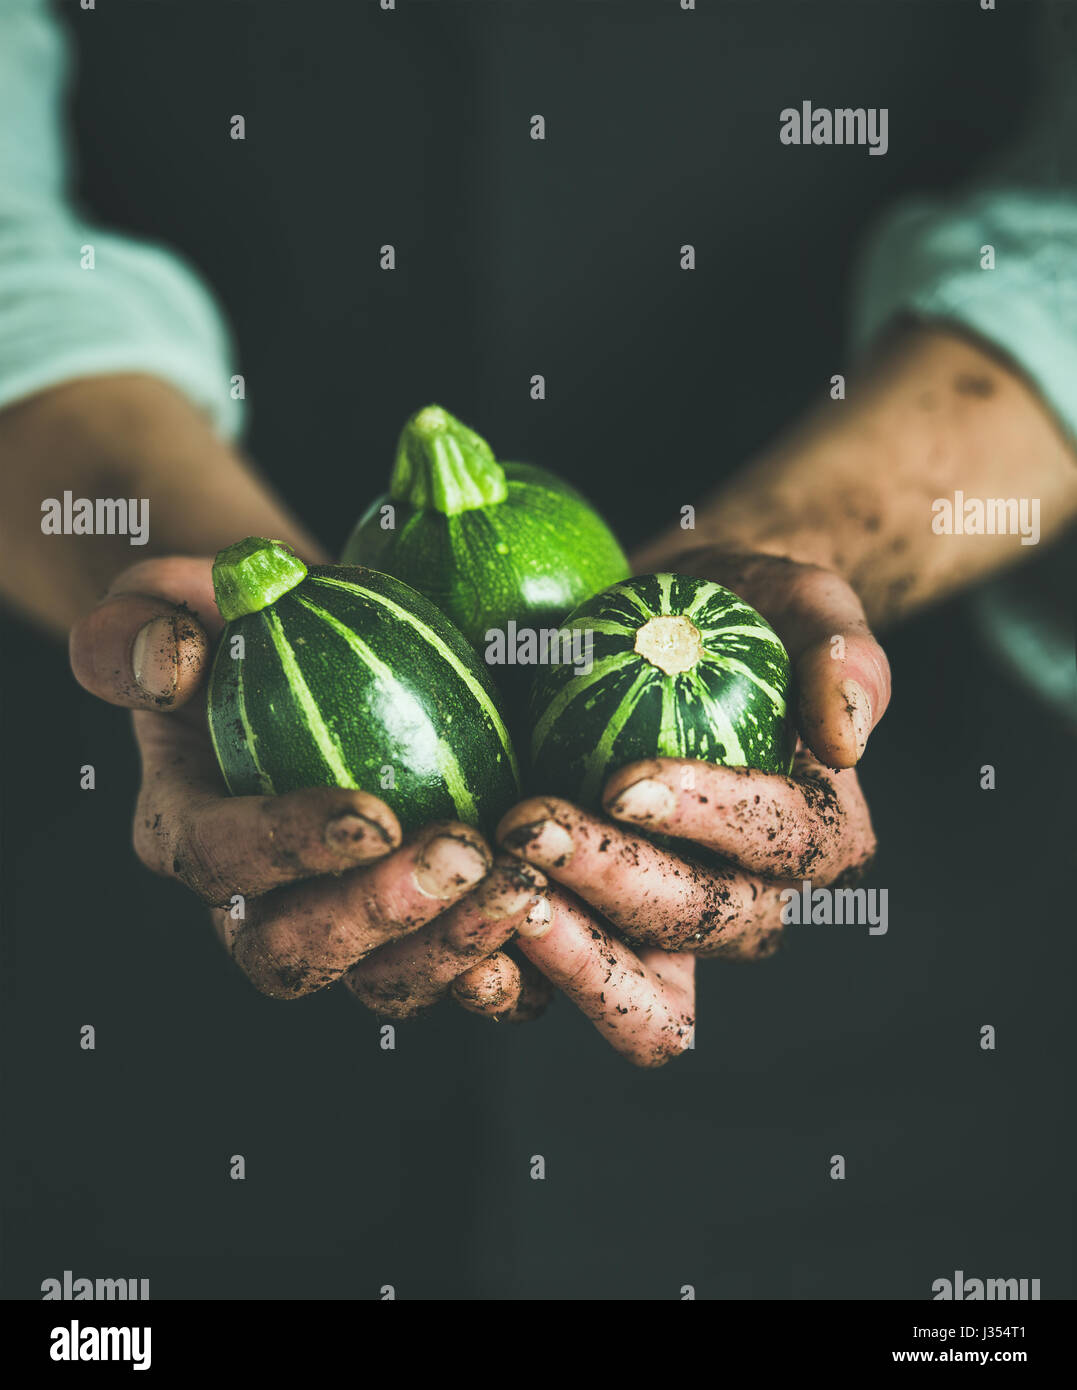 Man wearing black apron holding fresh green zucchinis in hands - Stock Image